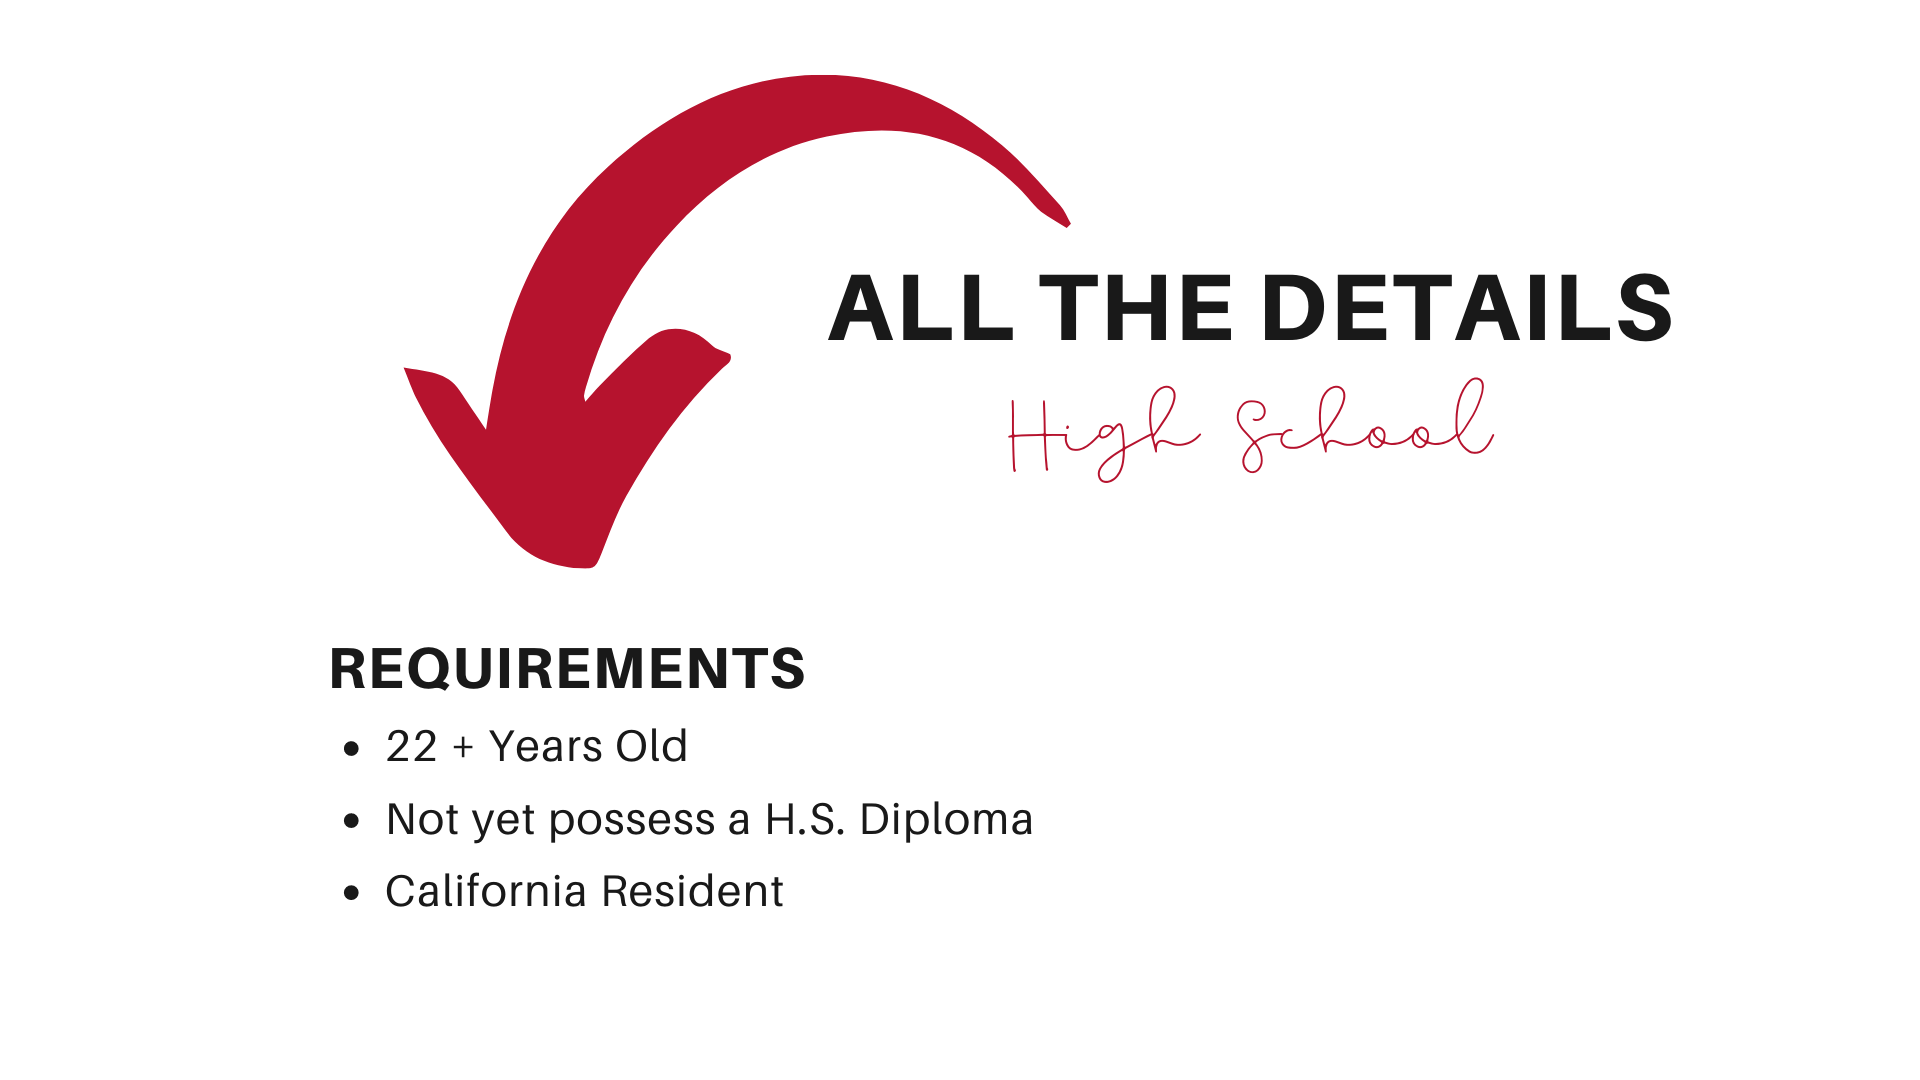 All the Details High School Requirements: 22+ Years Old, Not yet possess a H.S. Diploma, California Resident